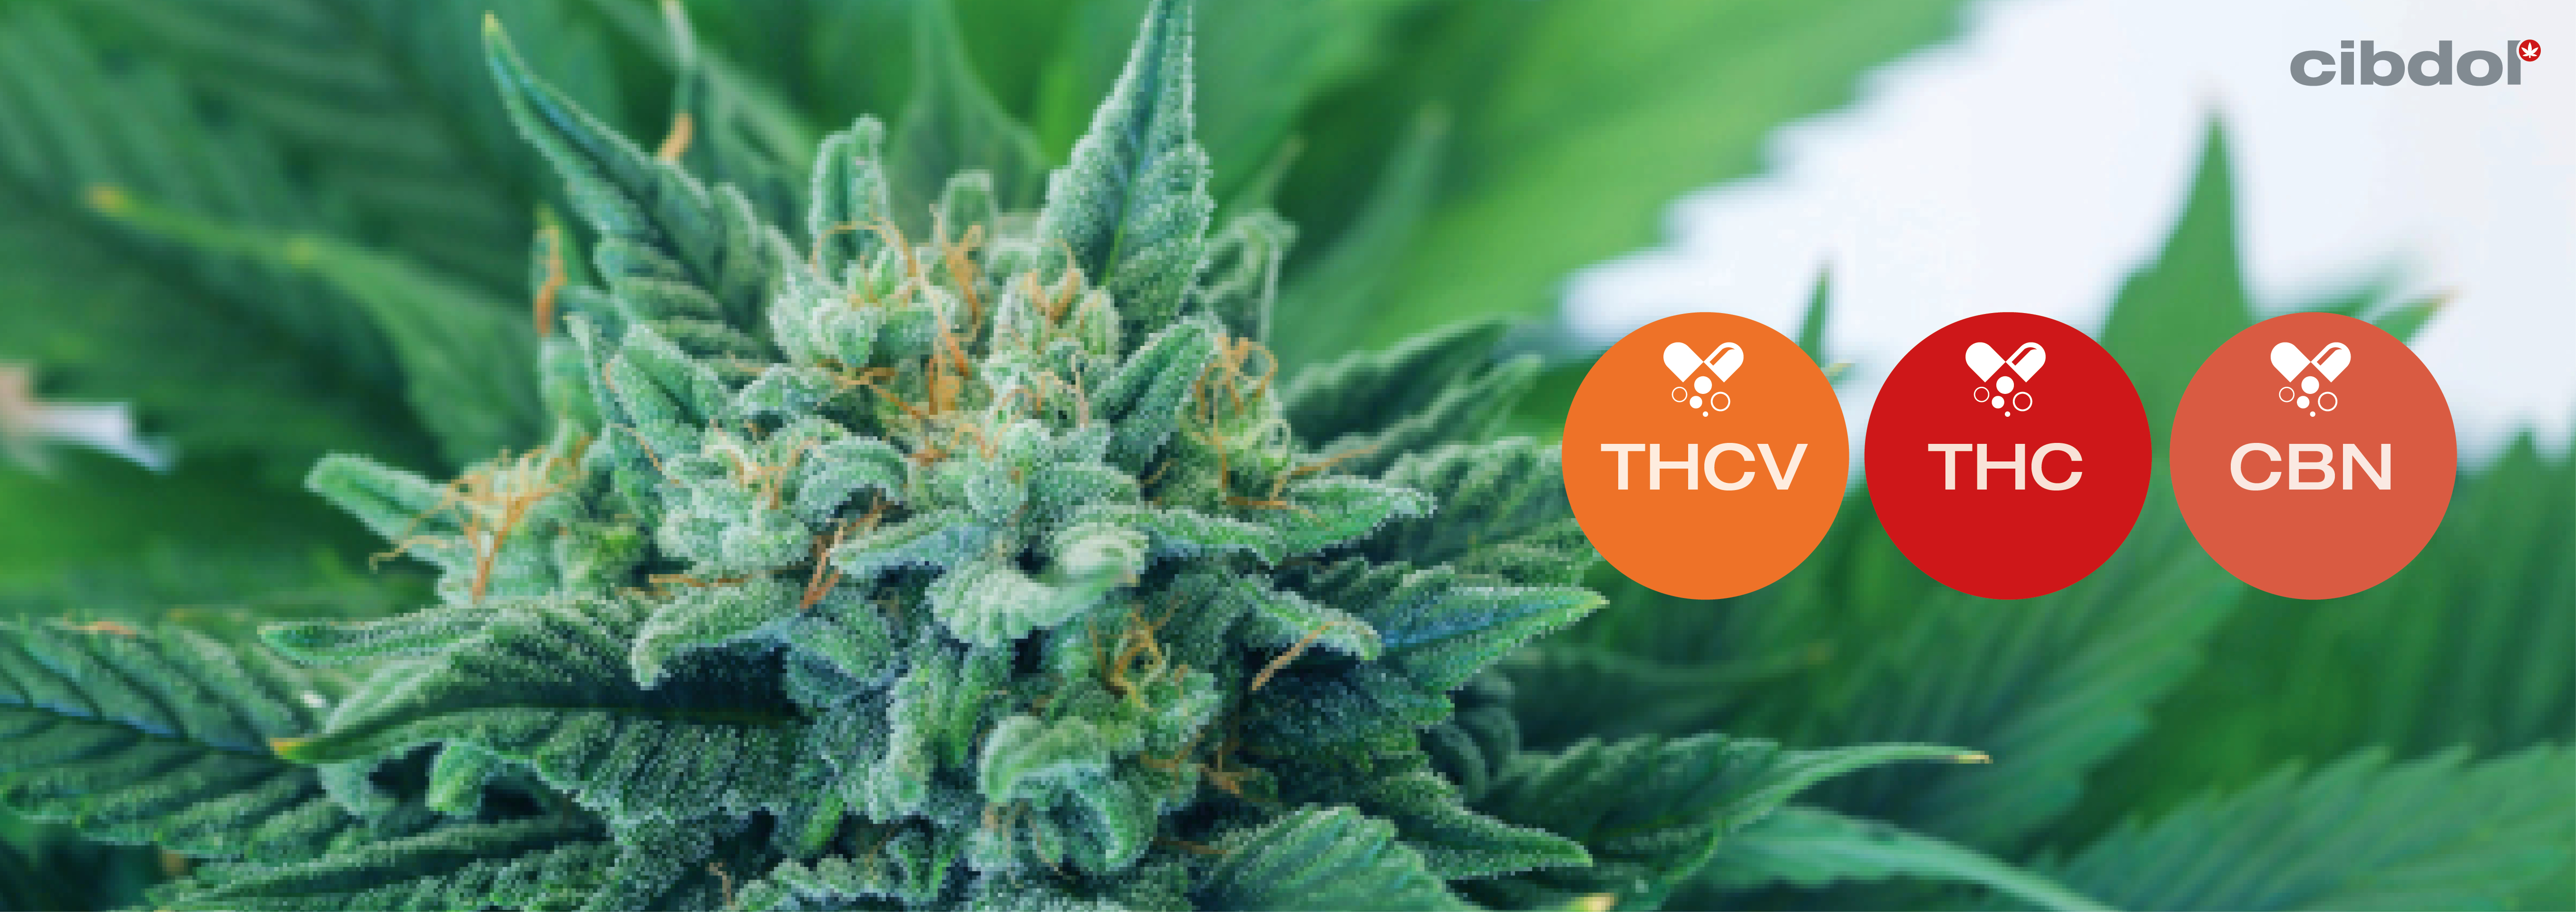 Which Cannabinoids Are Psychoactive?